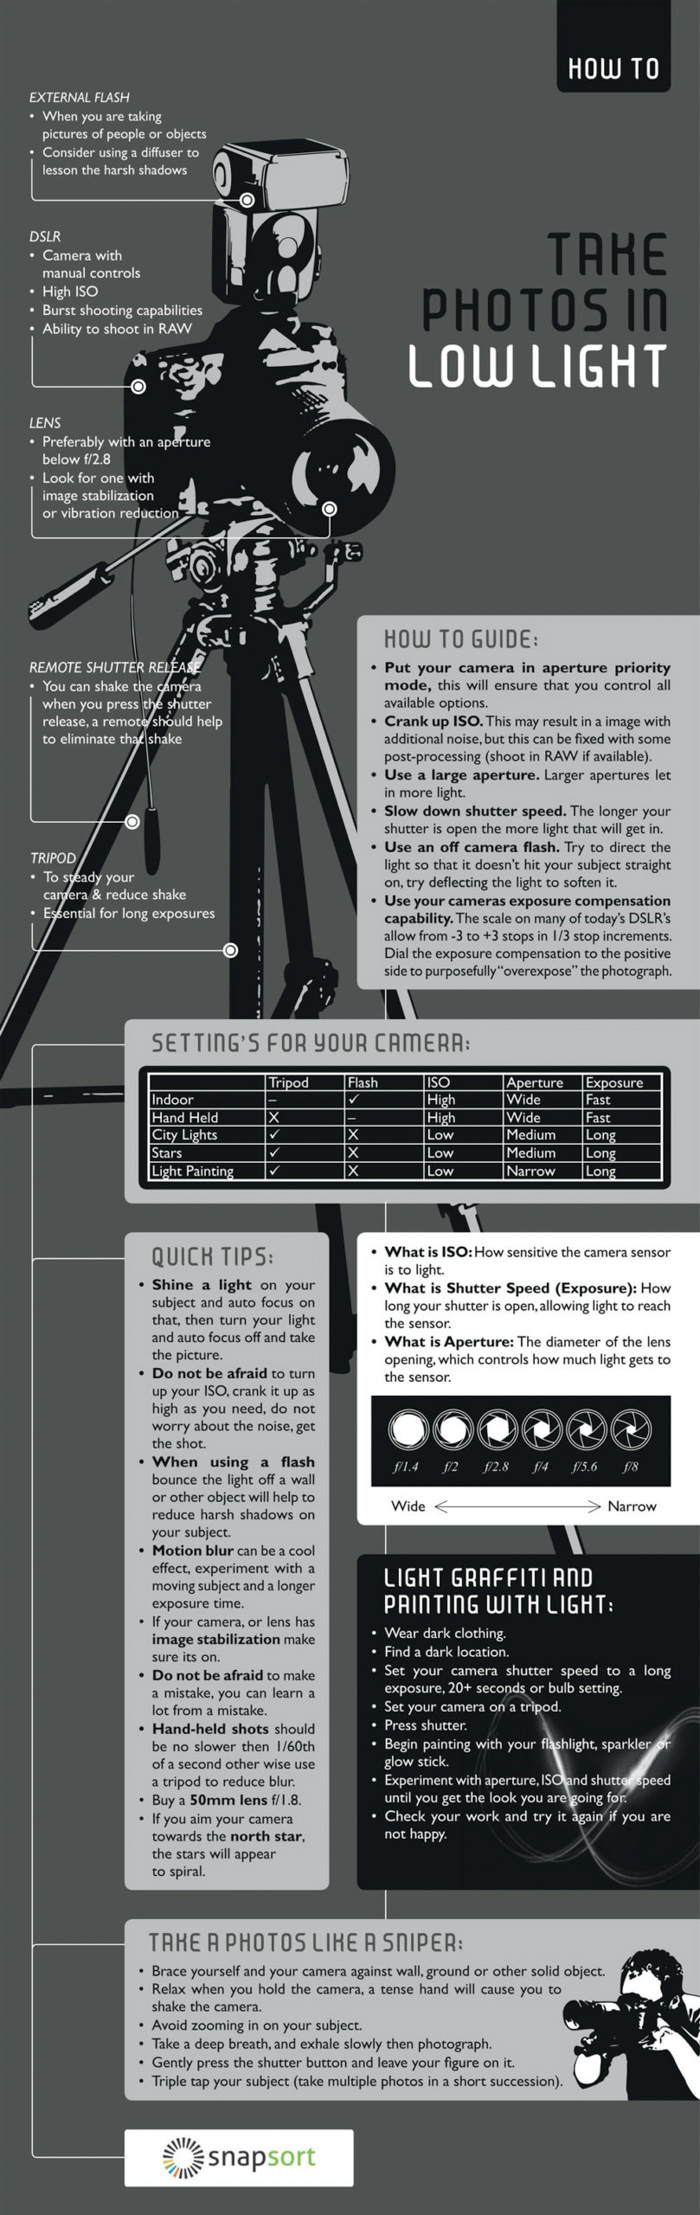 How to take photos in low light cheatsheet